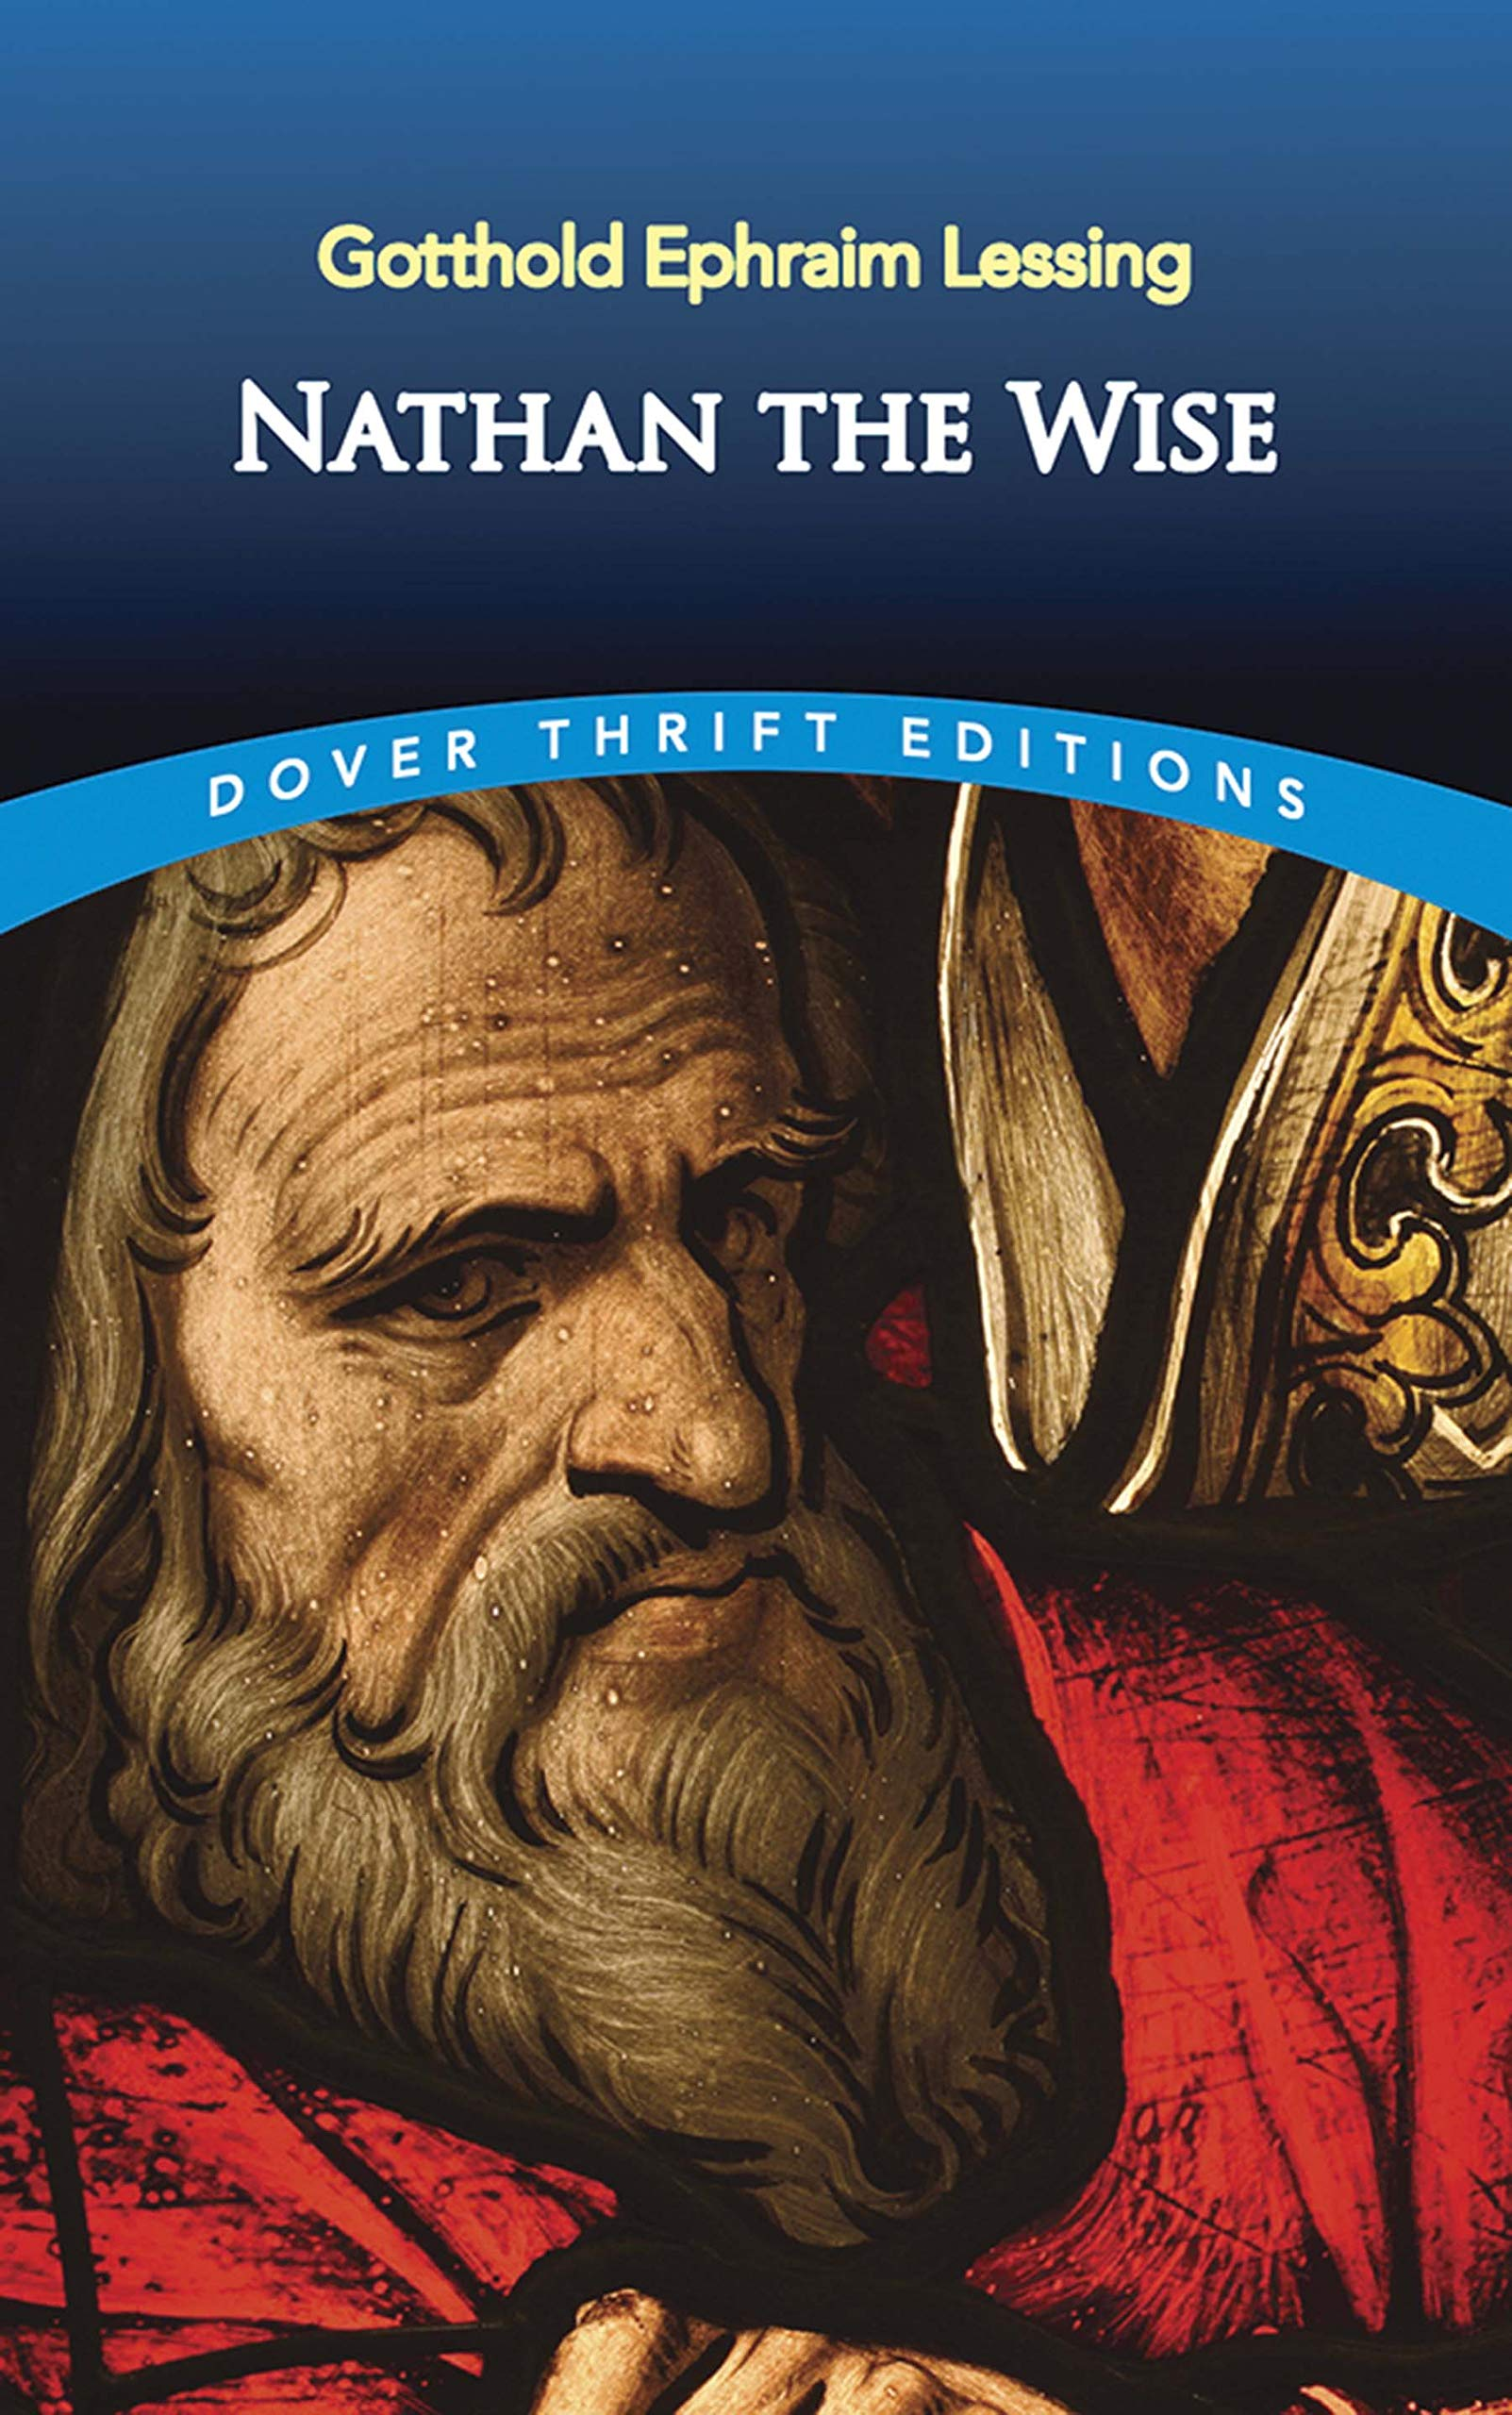 Amazon Com Nathan The Wise Dover Thrift Editions 0800759796762 Lessing Gotthold Ephraim Taylor William Books